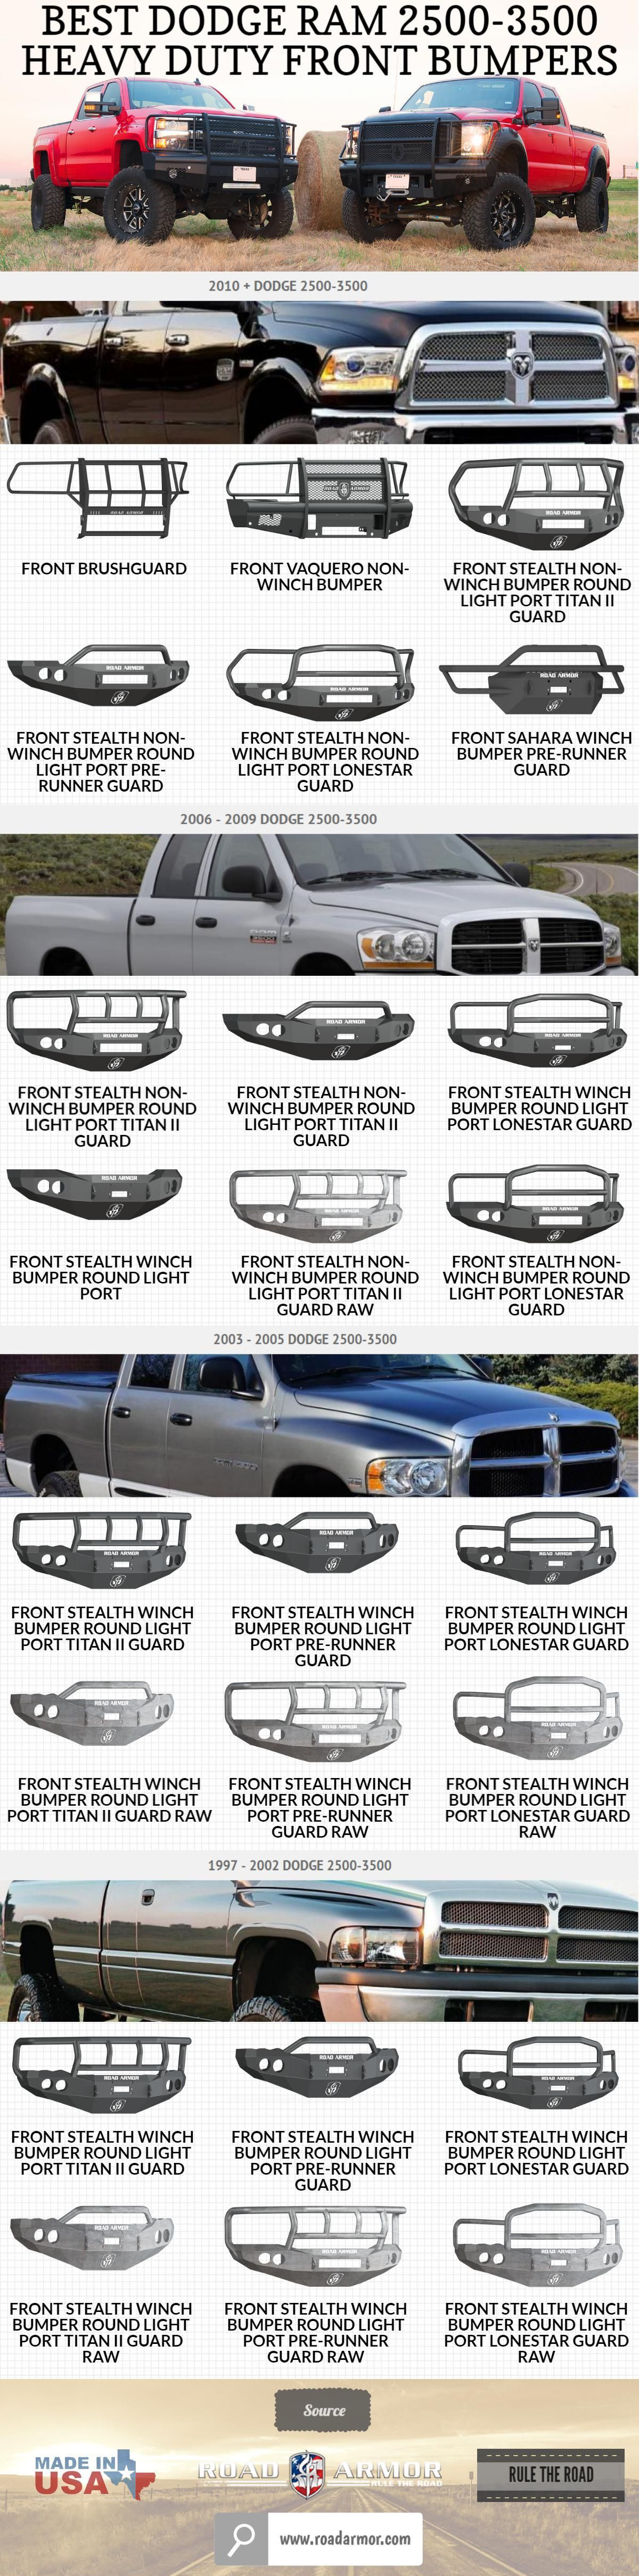 Best Dodge Ram 2500 3500 Heavy Duty Front Bumpers For More Details And Shop Online At Https Www Roadarmor Com Dodge Truck Accessories Truck Bumpers Dodge